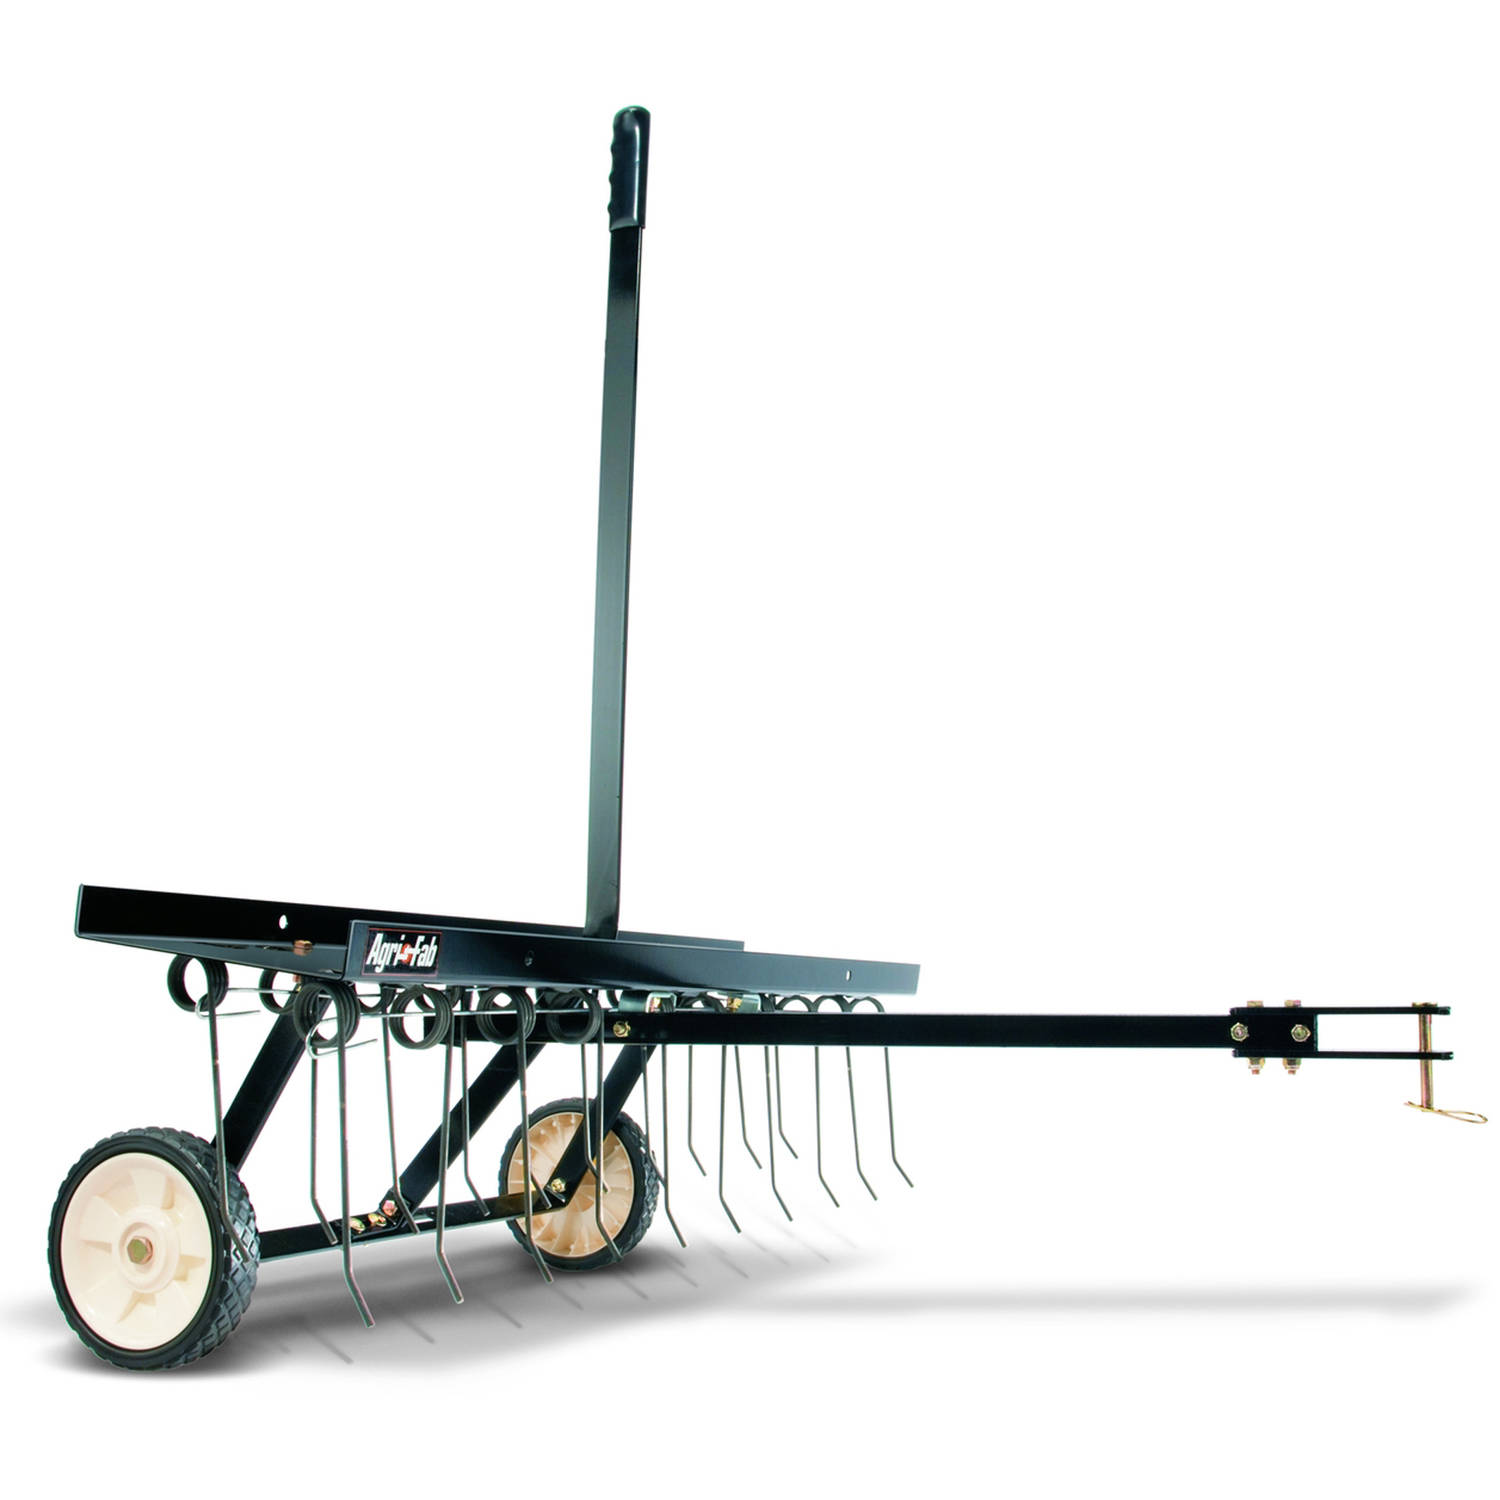 "Agri-Fab, Inc. 40"" Dethatcher Tow Behind Lawn Groomer Model 45-02941"